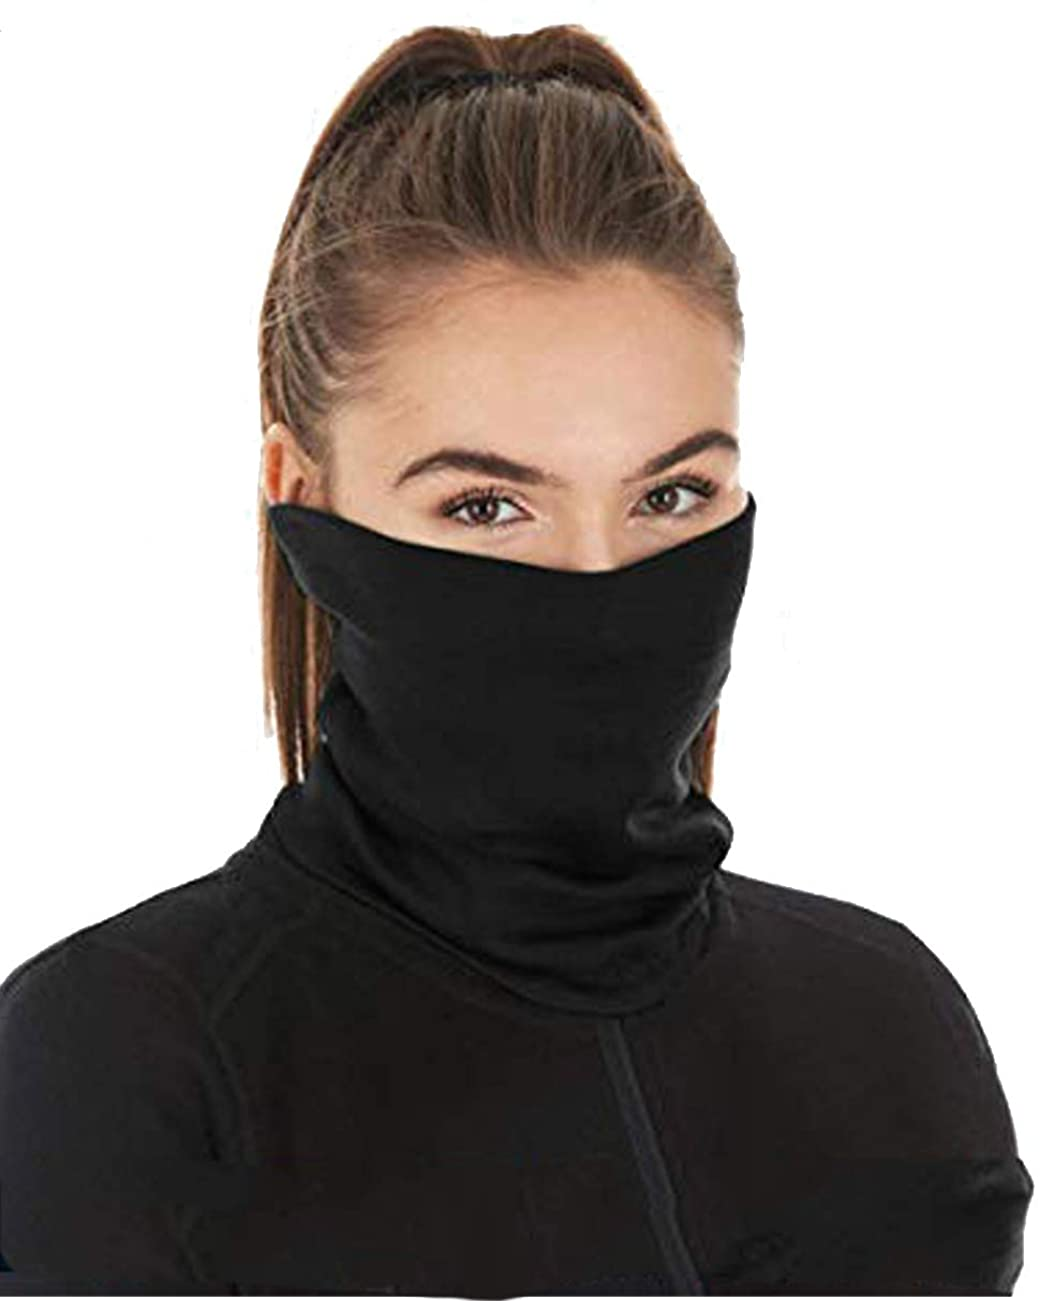 Scarf Bandanas Neck Gaiter with Safety Filters Face Cover Balaclava Scarves